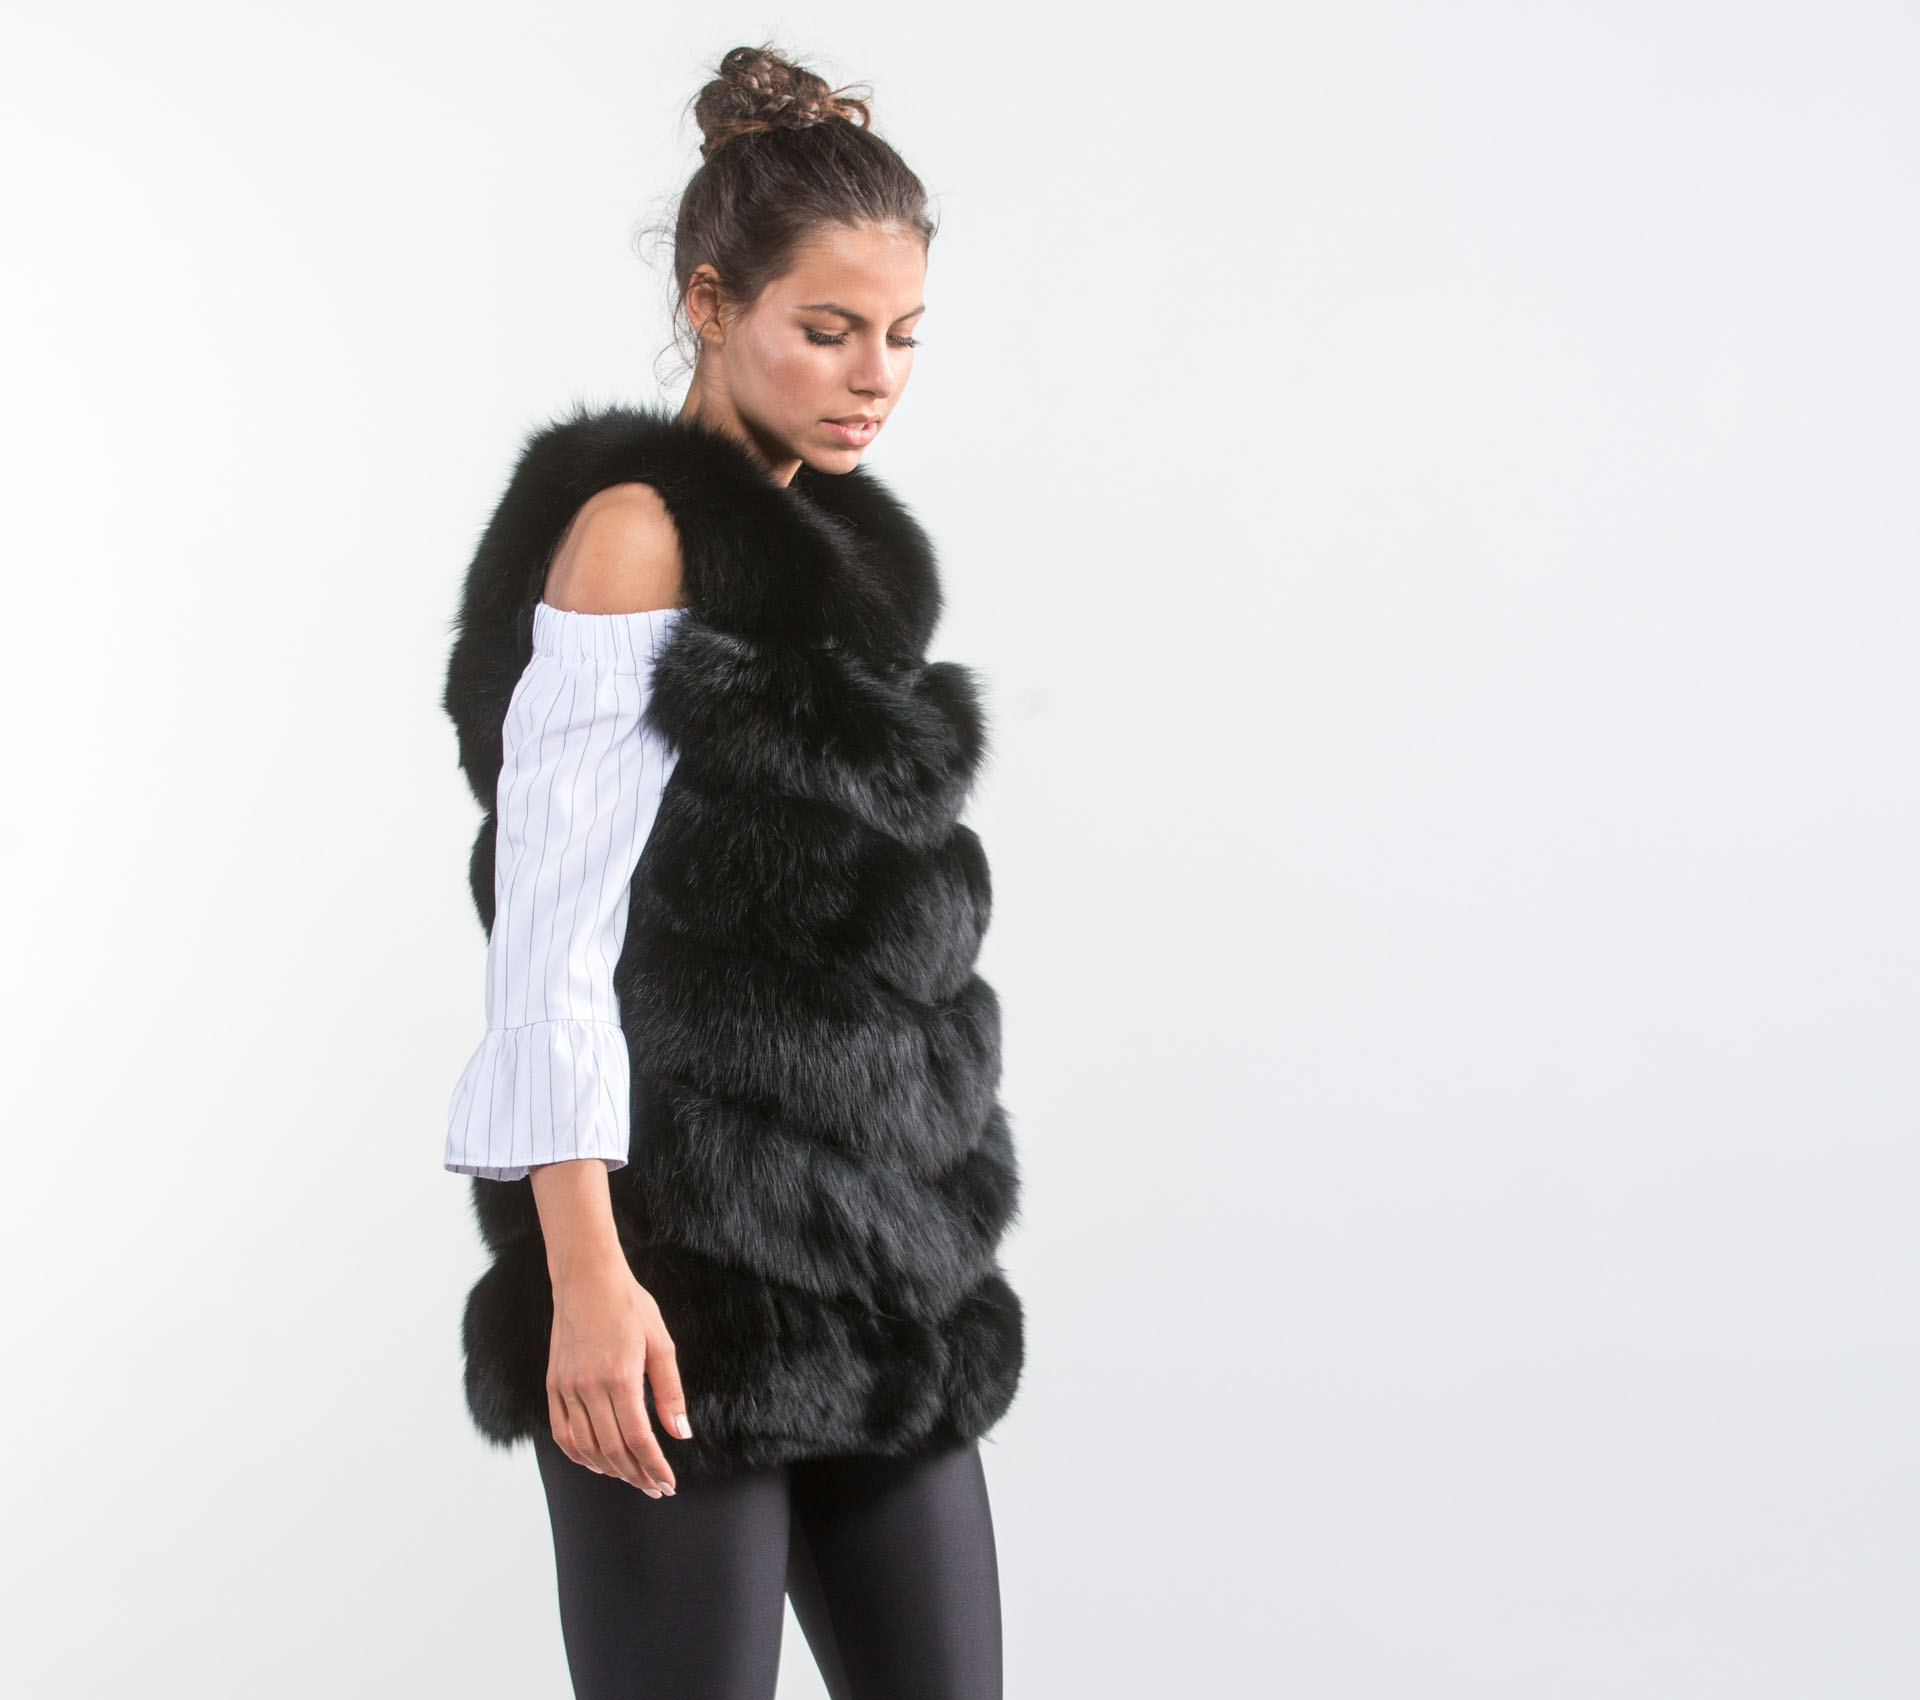 Make a chic and cozy statement in this soft, plush vest with ombré shading and faux fur trim. Individual style. Clean, modern lines. The exclusive Black Label by Chico's ™ collection. 85% acrylic, 15% polyester. Imported.